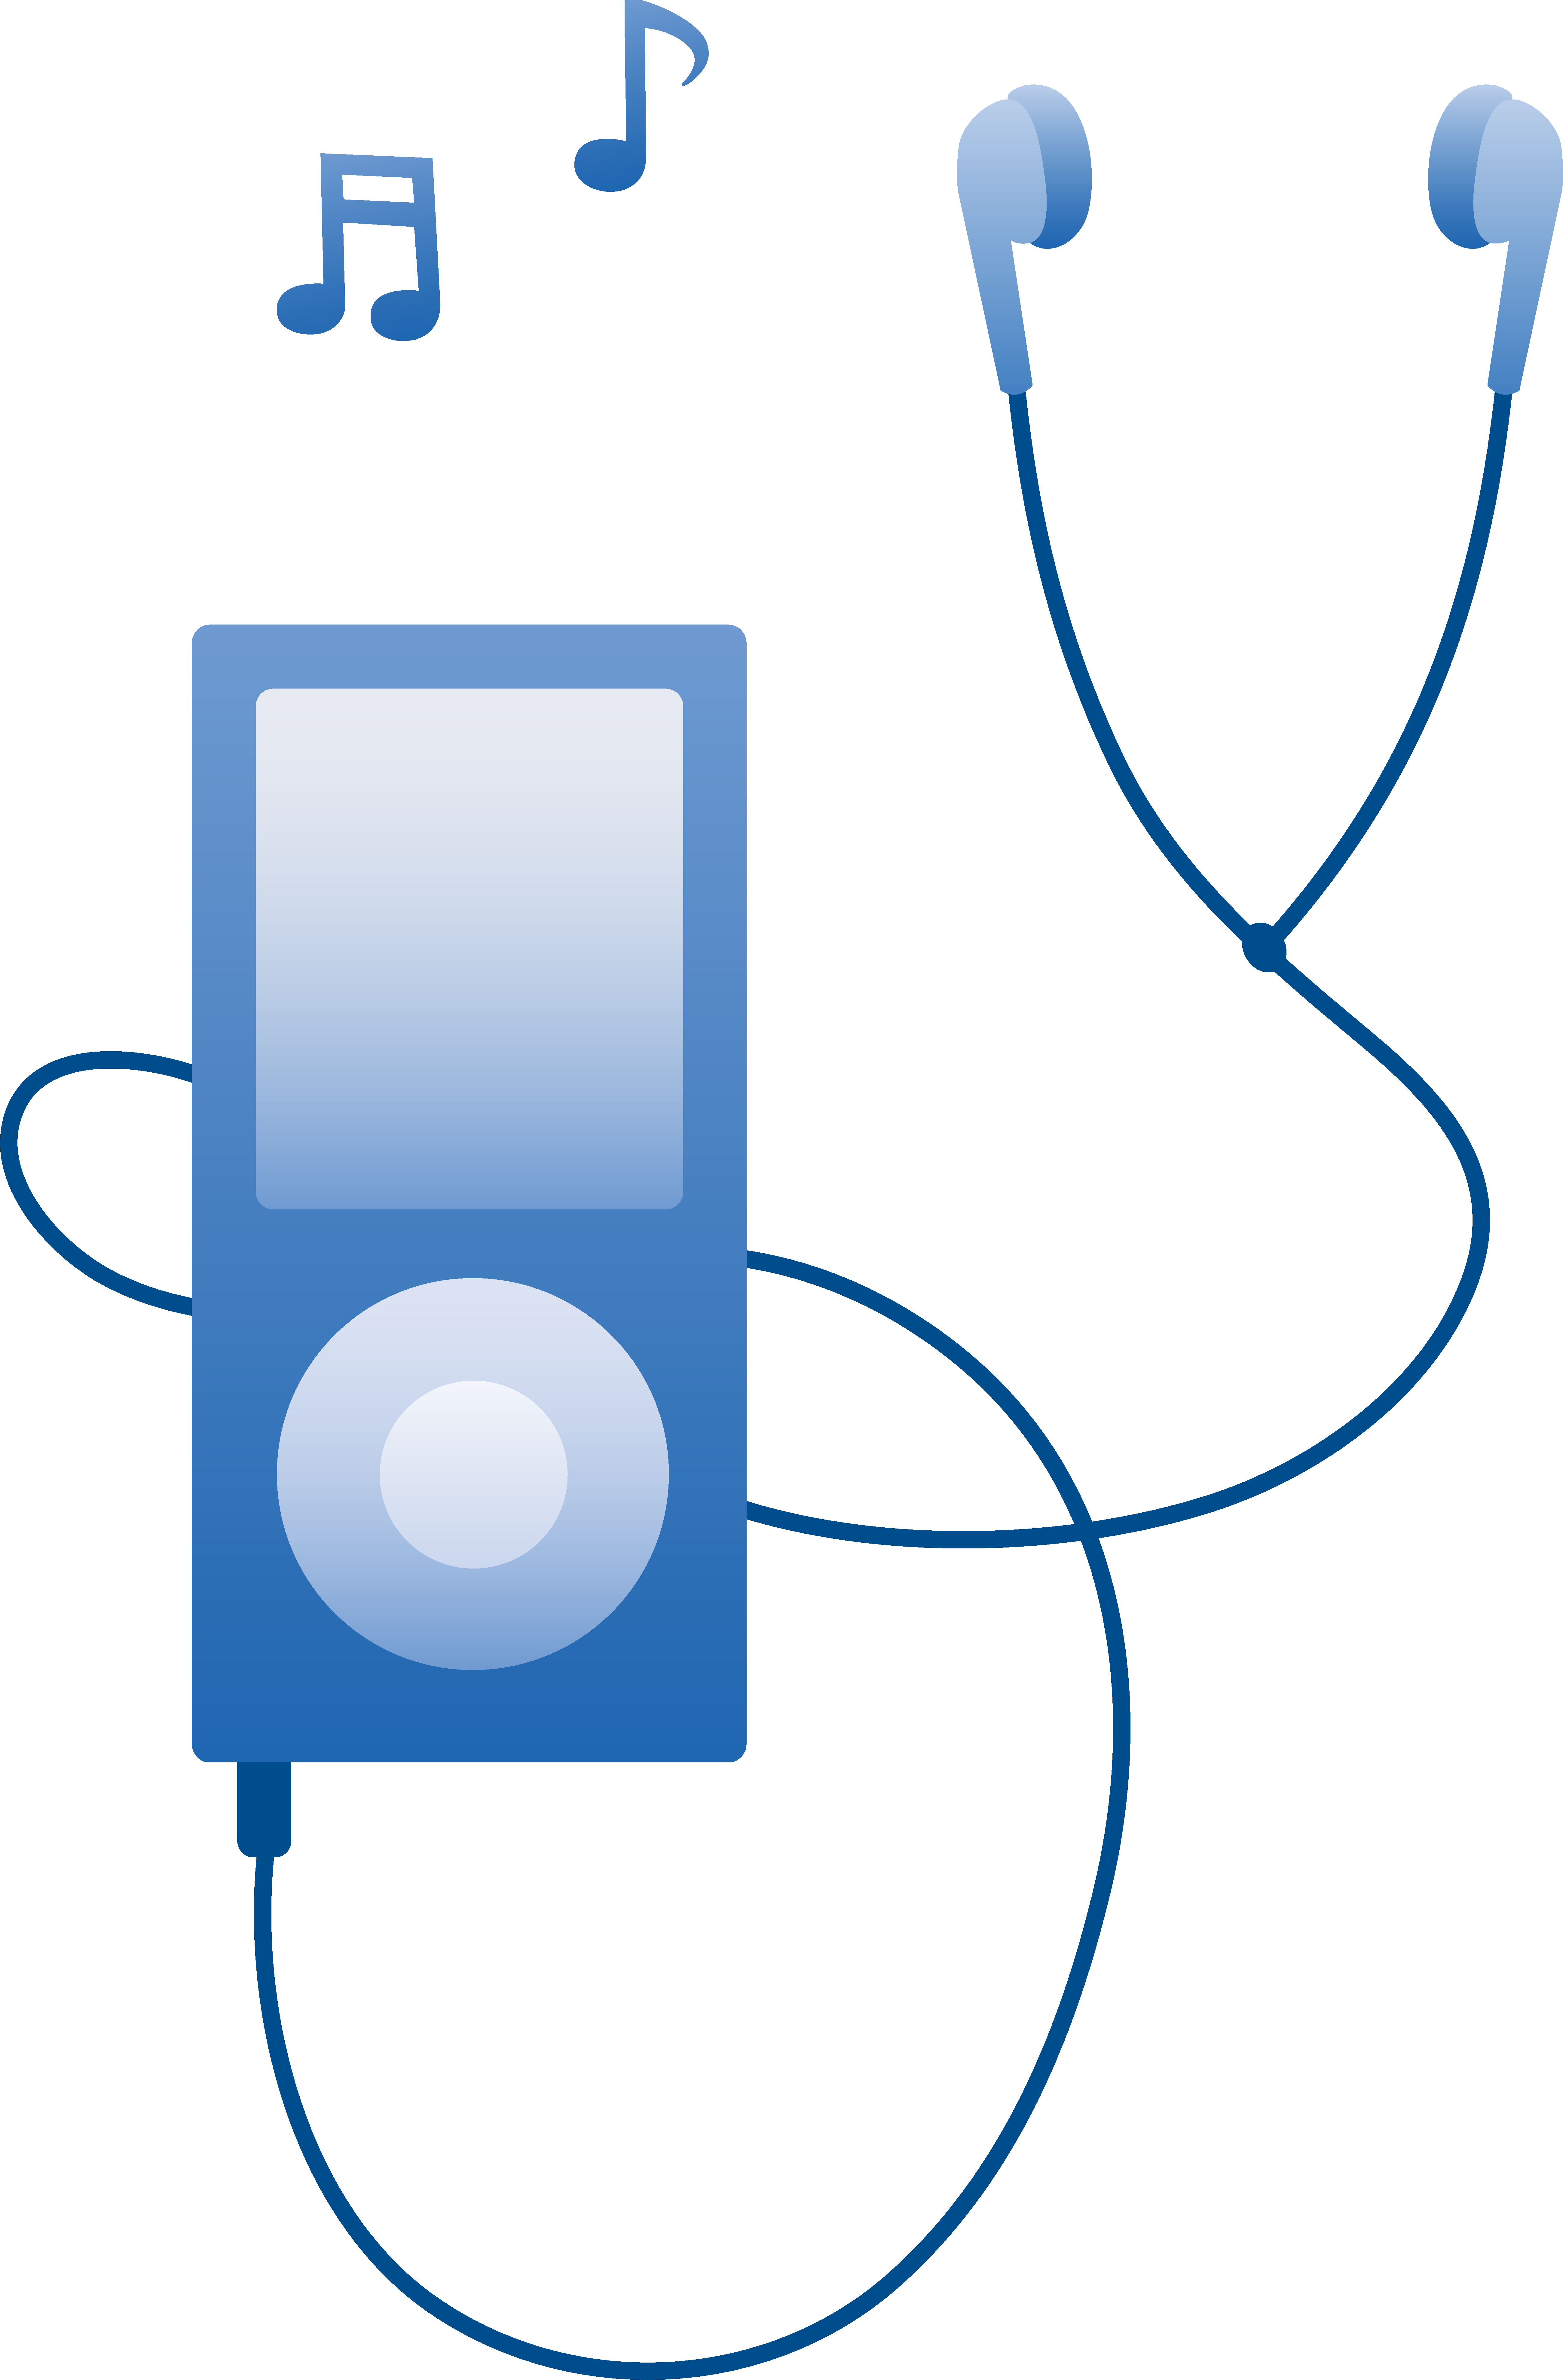 Blue MP3 Player Playing Music.